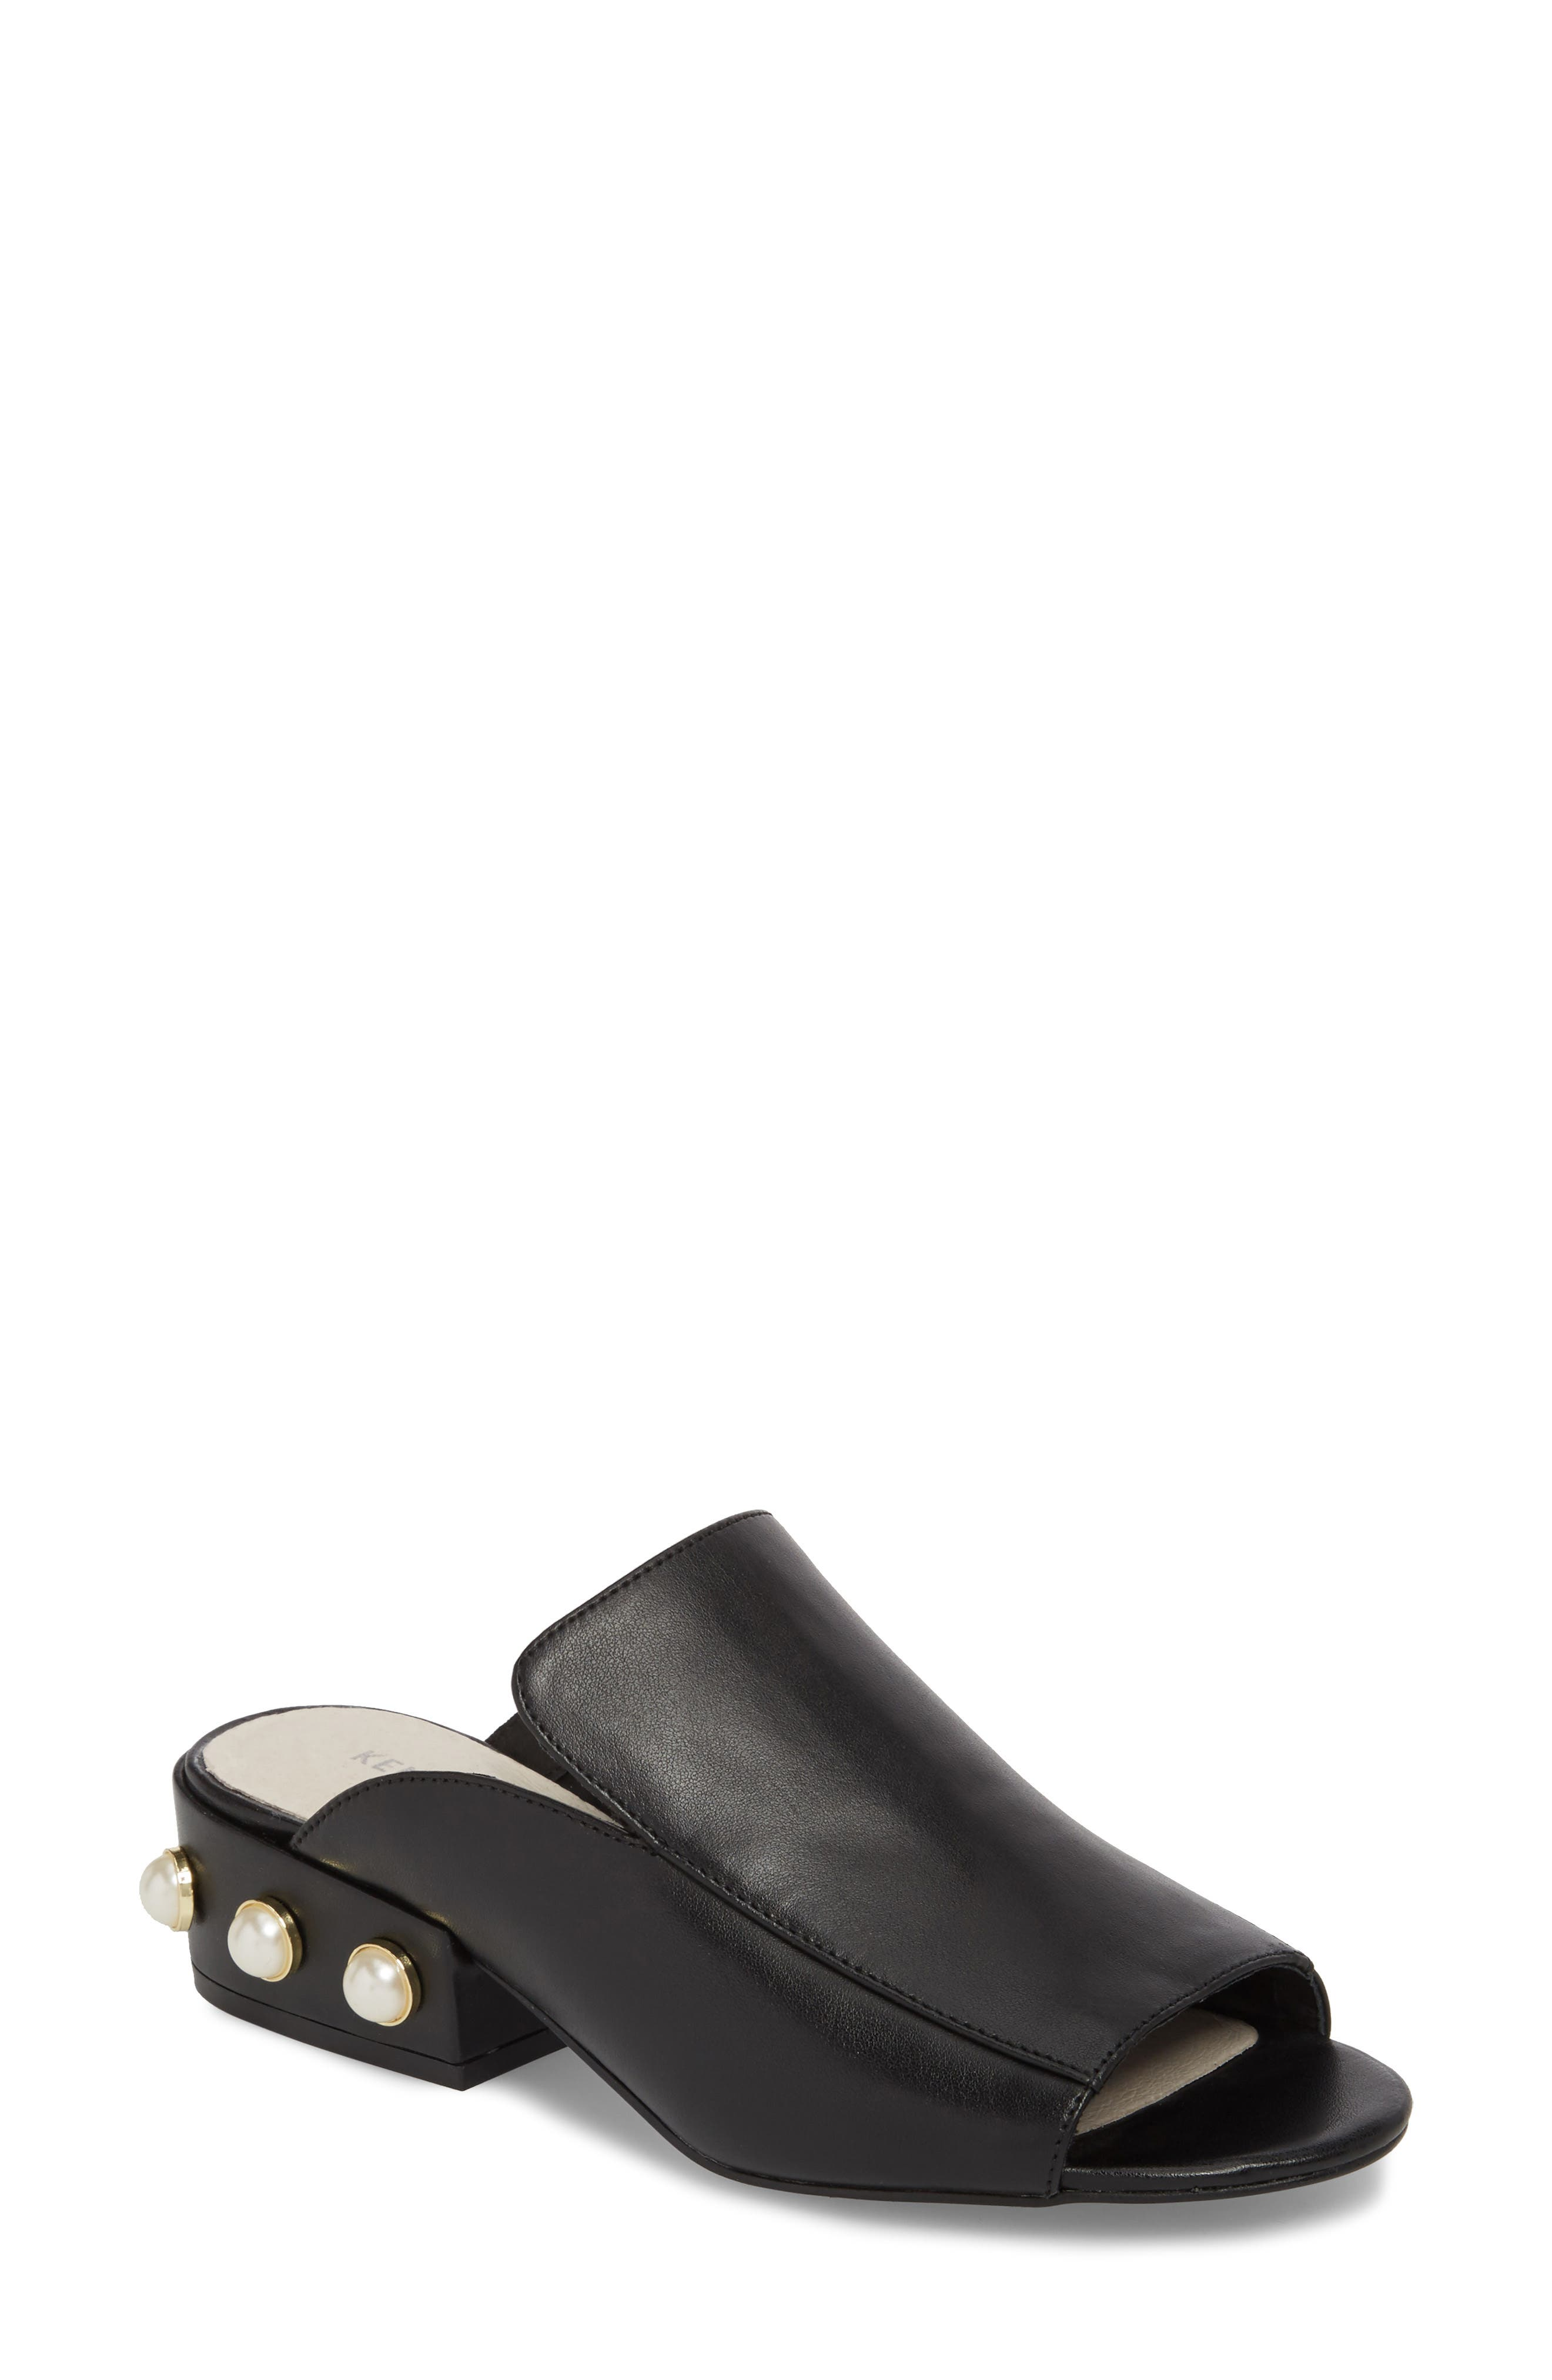 KENNETH COLE NEW YORK,                             Farley Embellished Mule,                             Main thumbnail 1, color,                             001